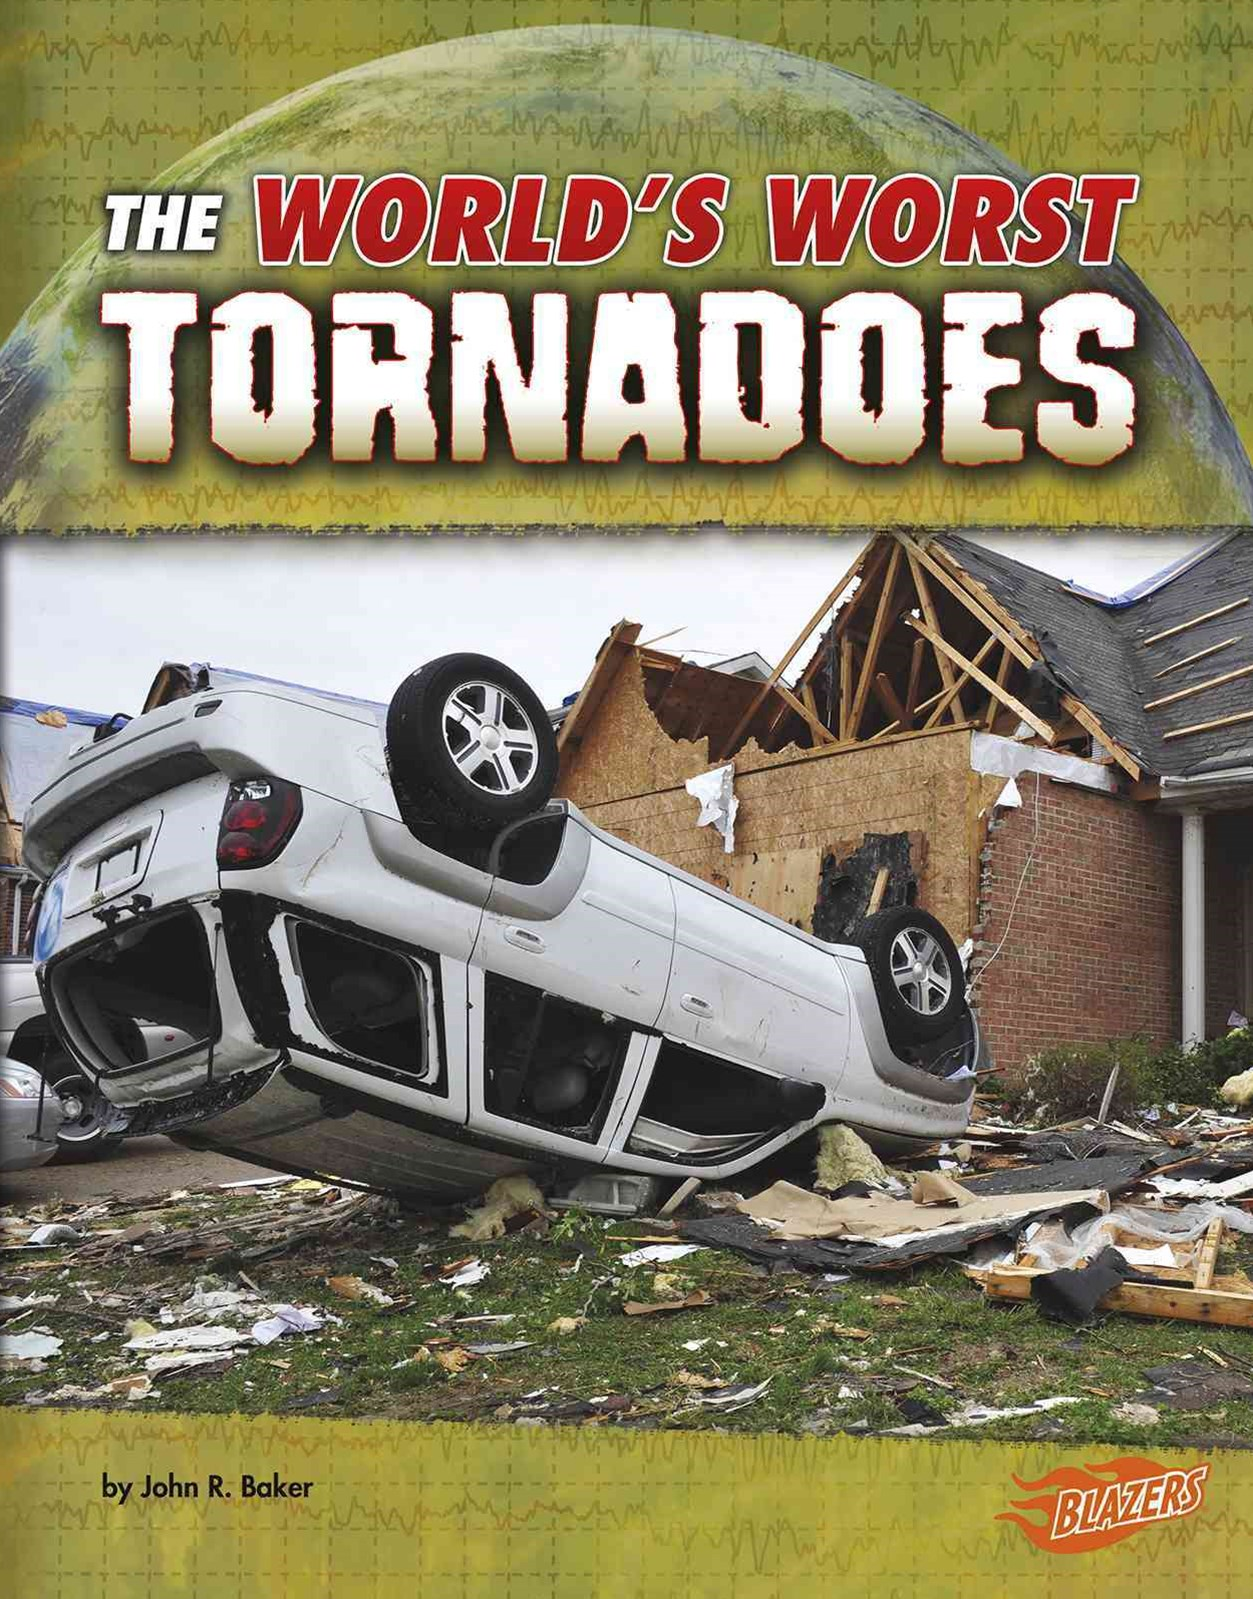 The Worlds Worst Tornadoes